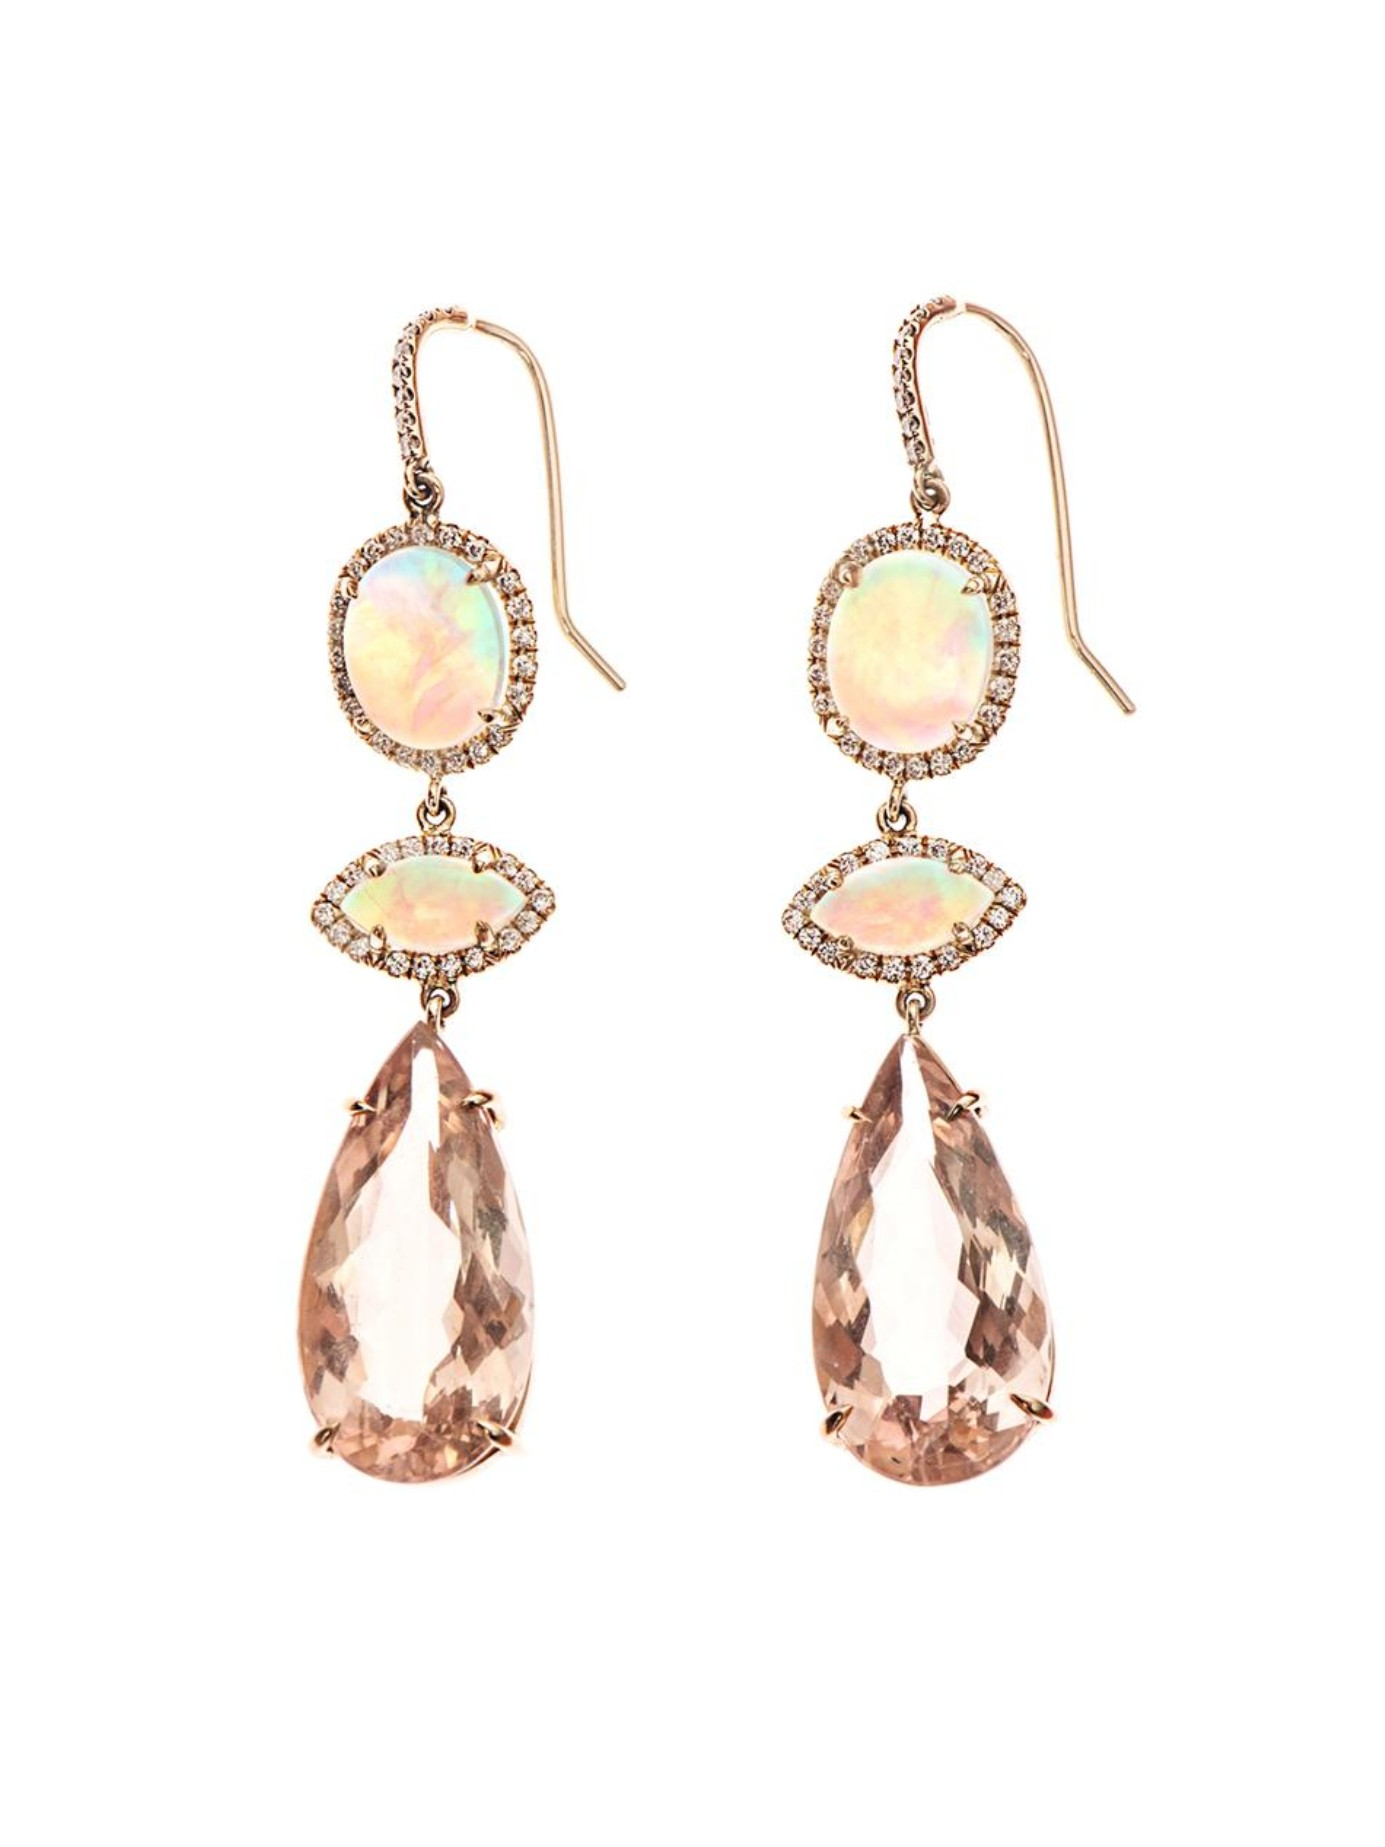 NSR Nina Runsdorf Diamond, morganite & pink-gold earrings